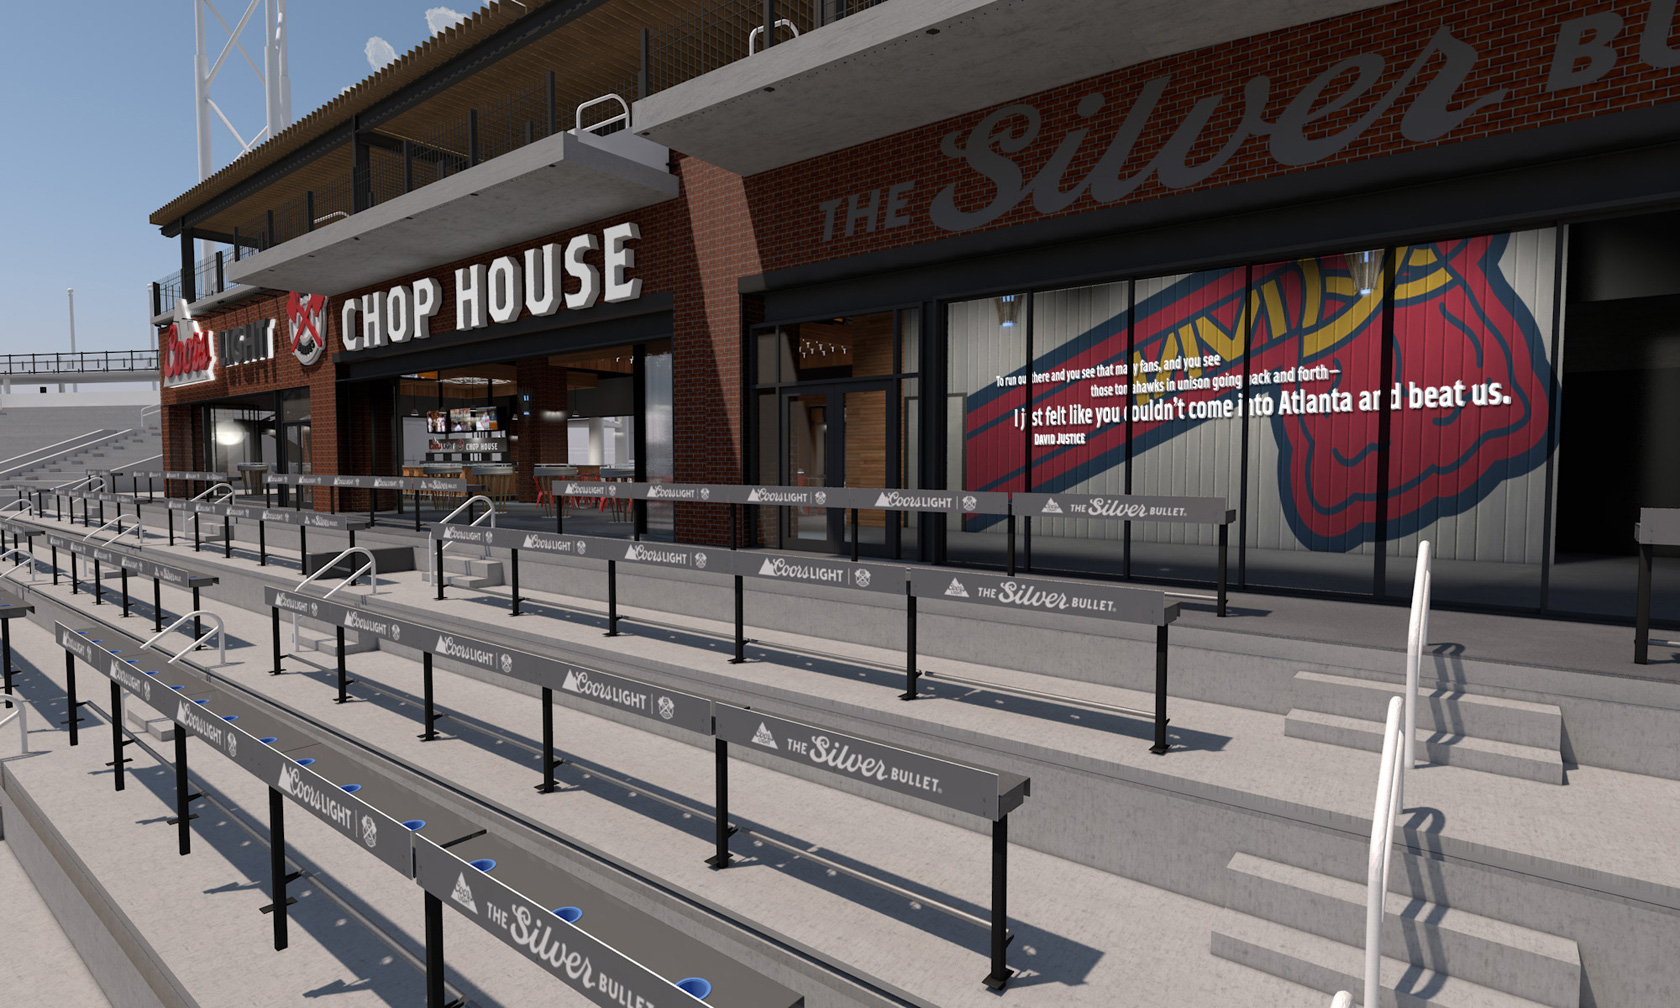 Rendering of Coors Light Chop House at SunTrust Park